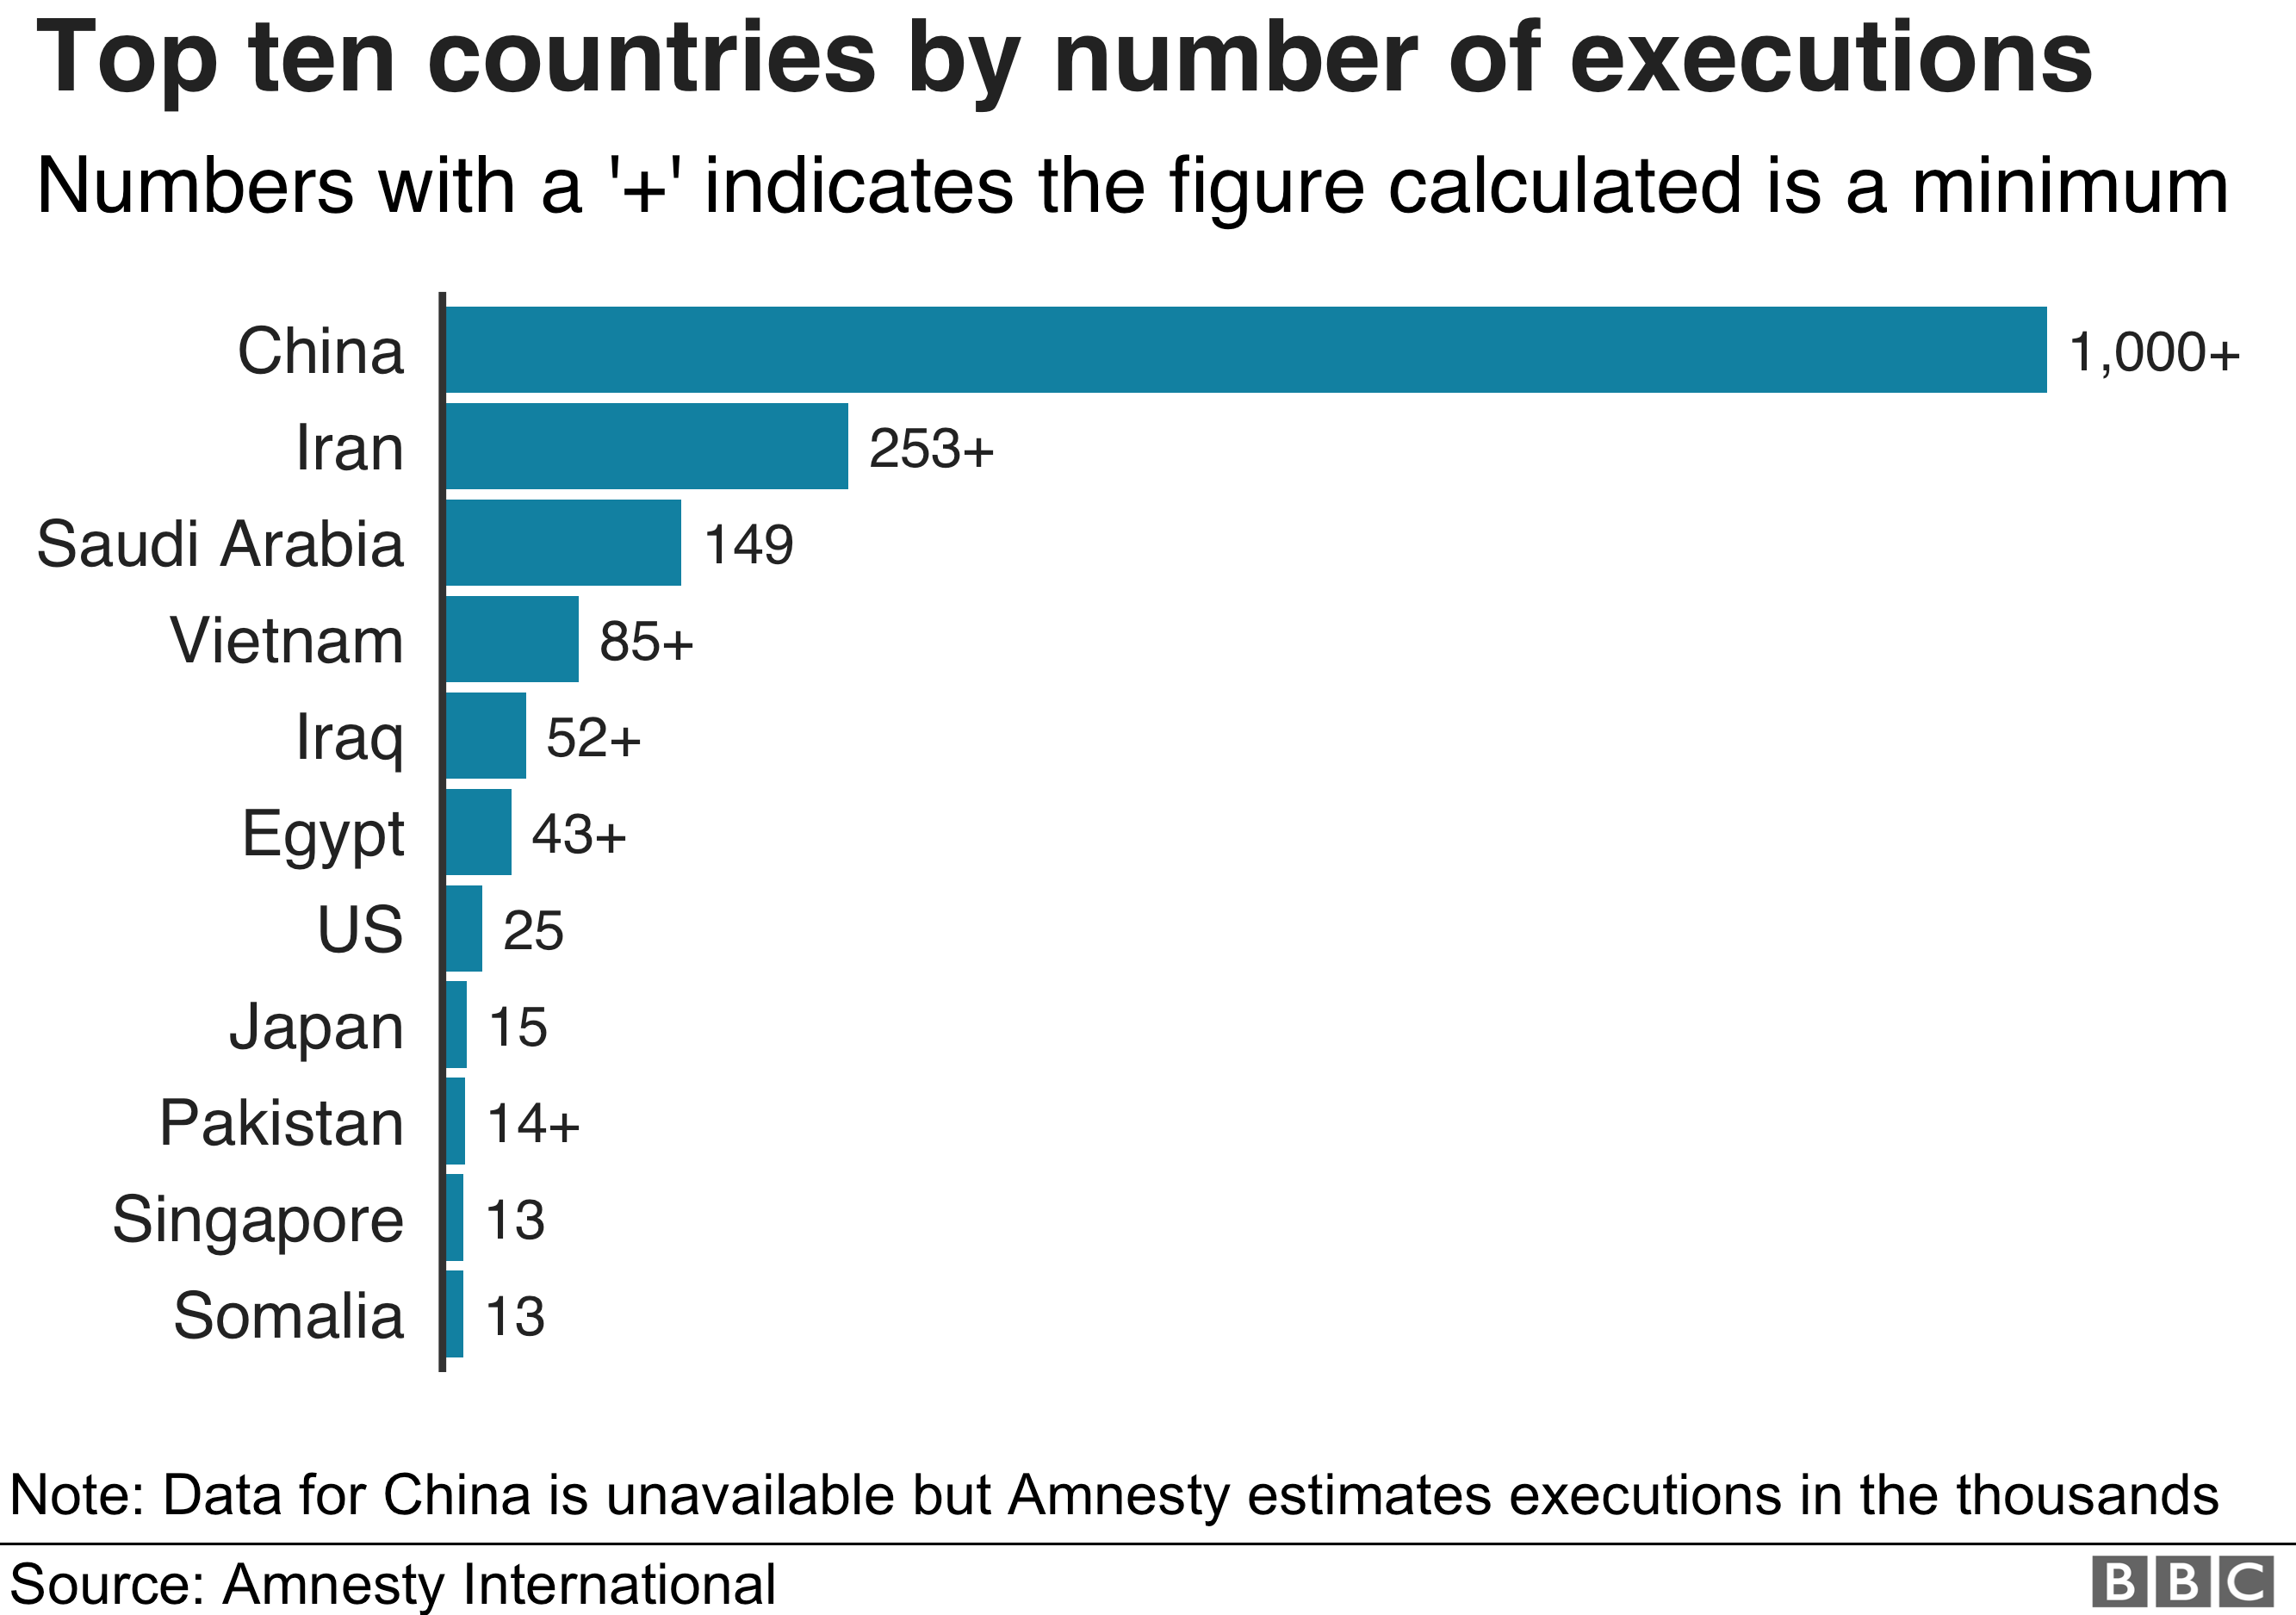 Top ten countries for executions